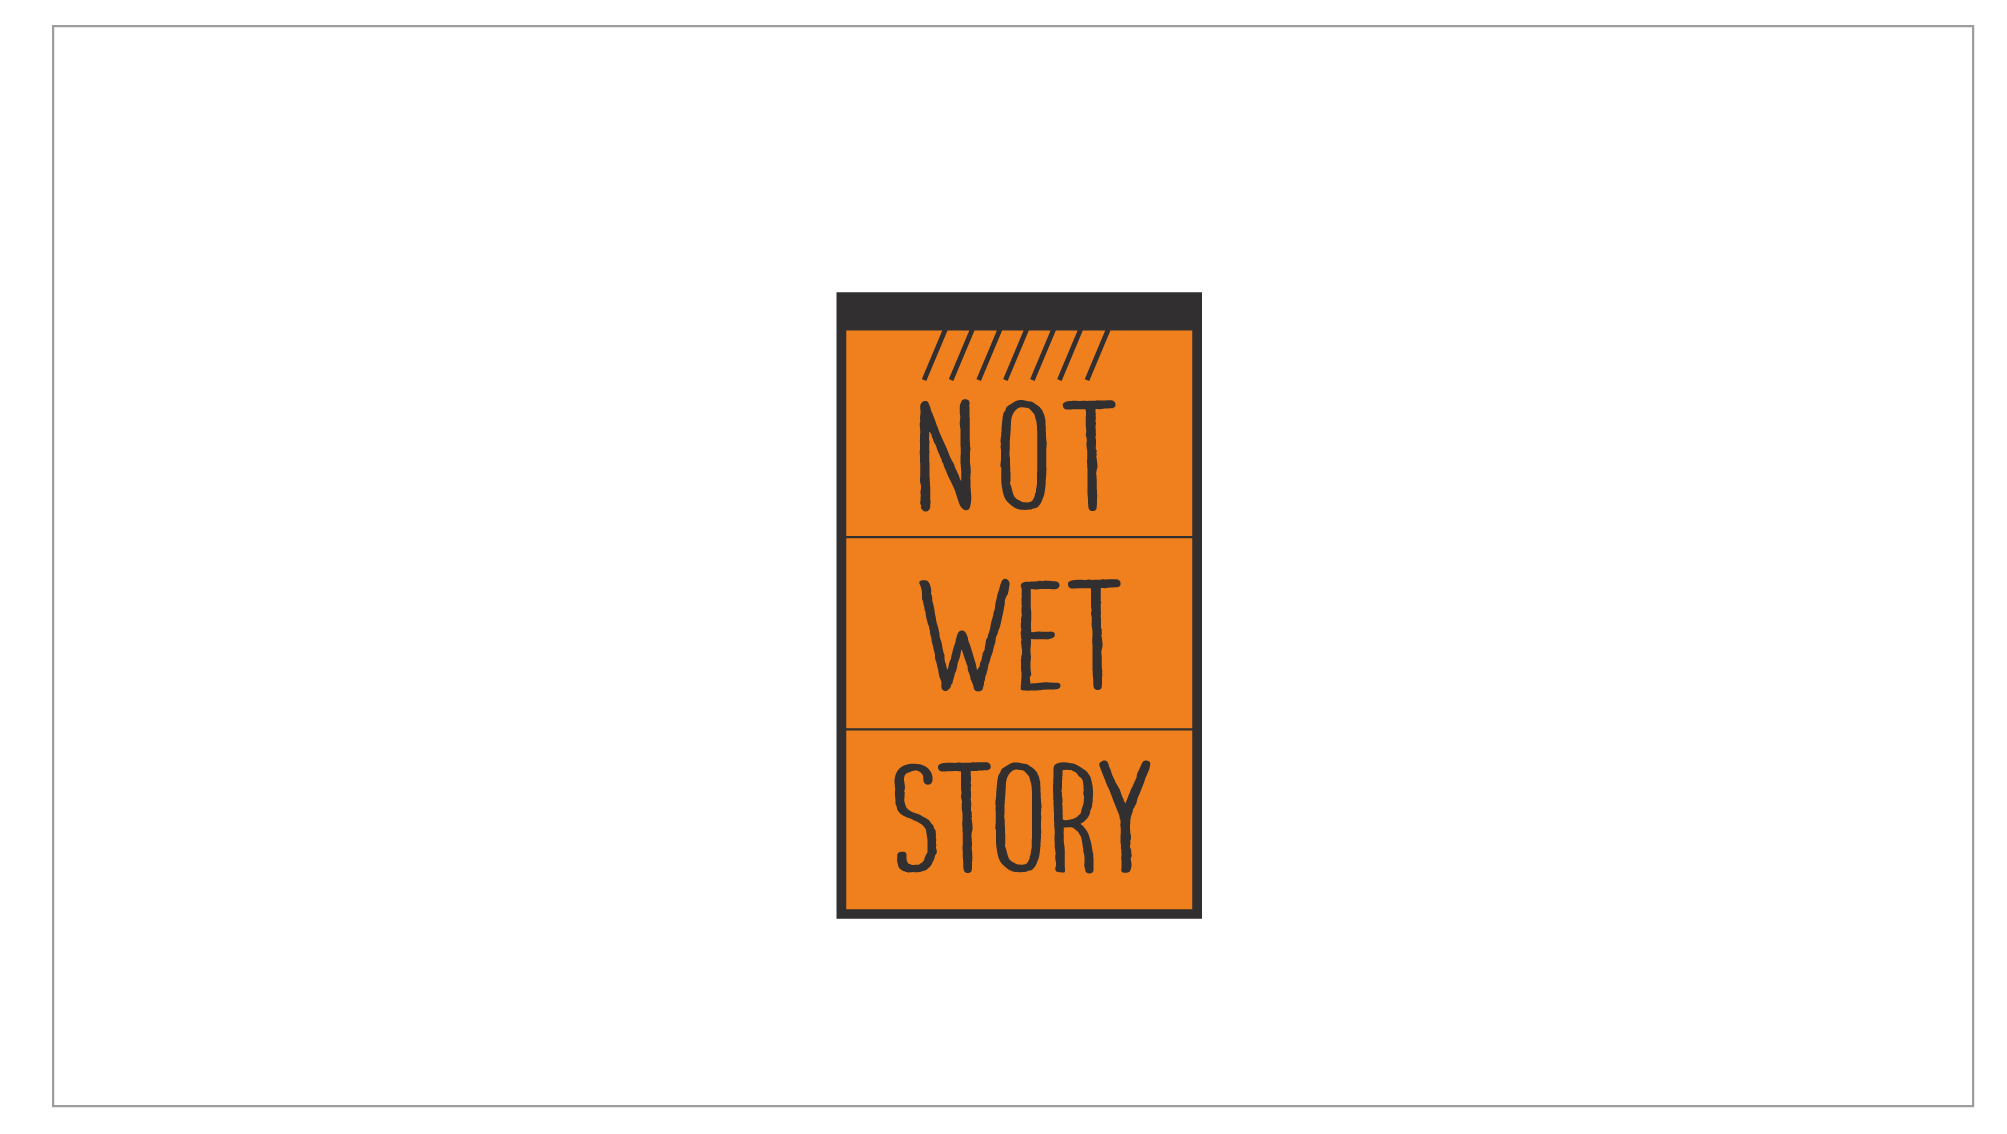 LOGO NOT WET STORY